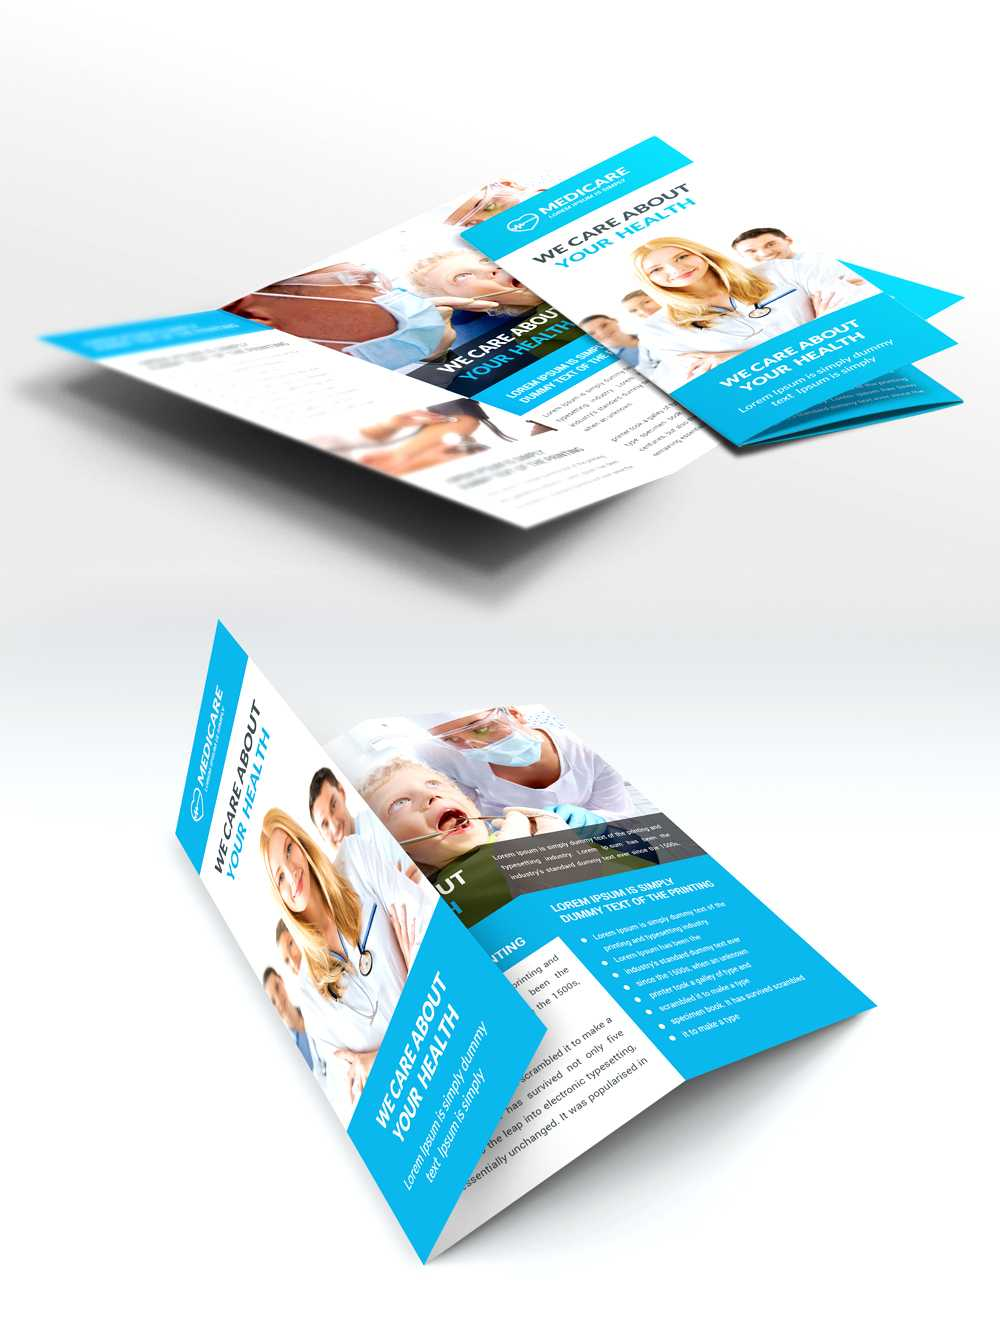 Medical Care And Hospital Trifold Brochure Template Free Psd Throughout Medical Office Brochure Templates